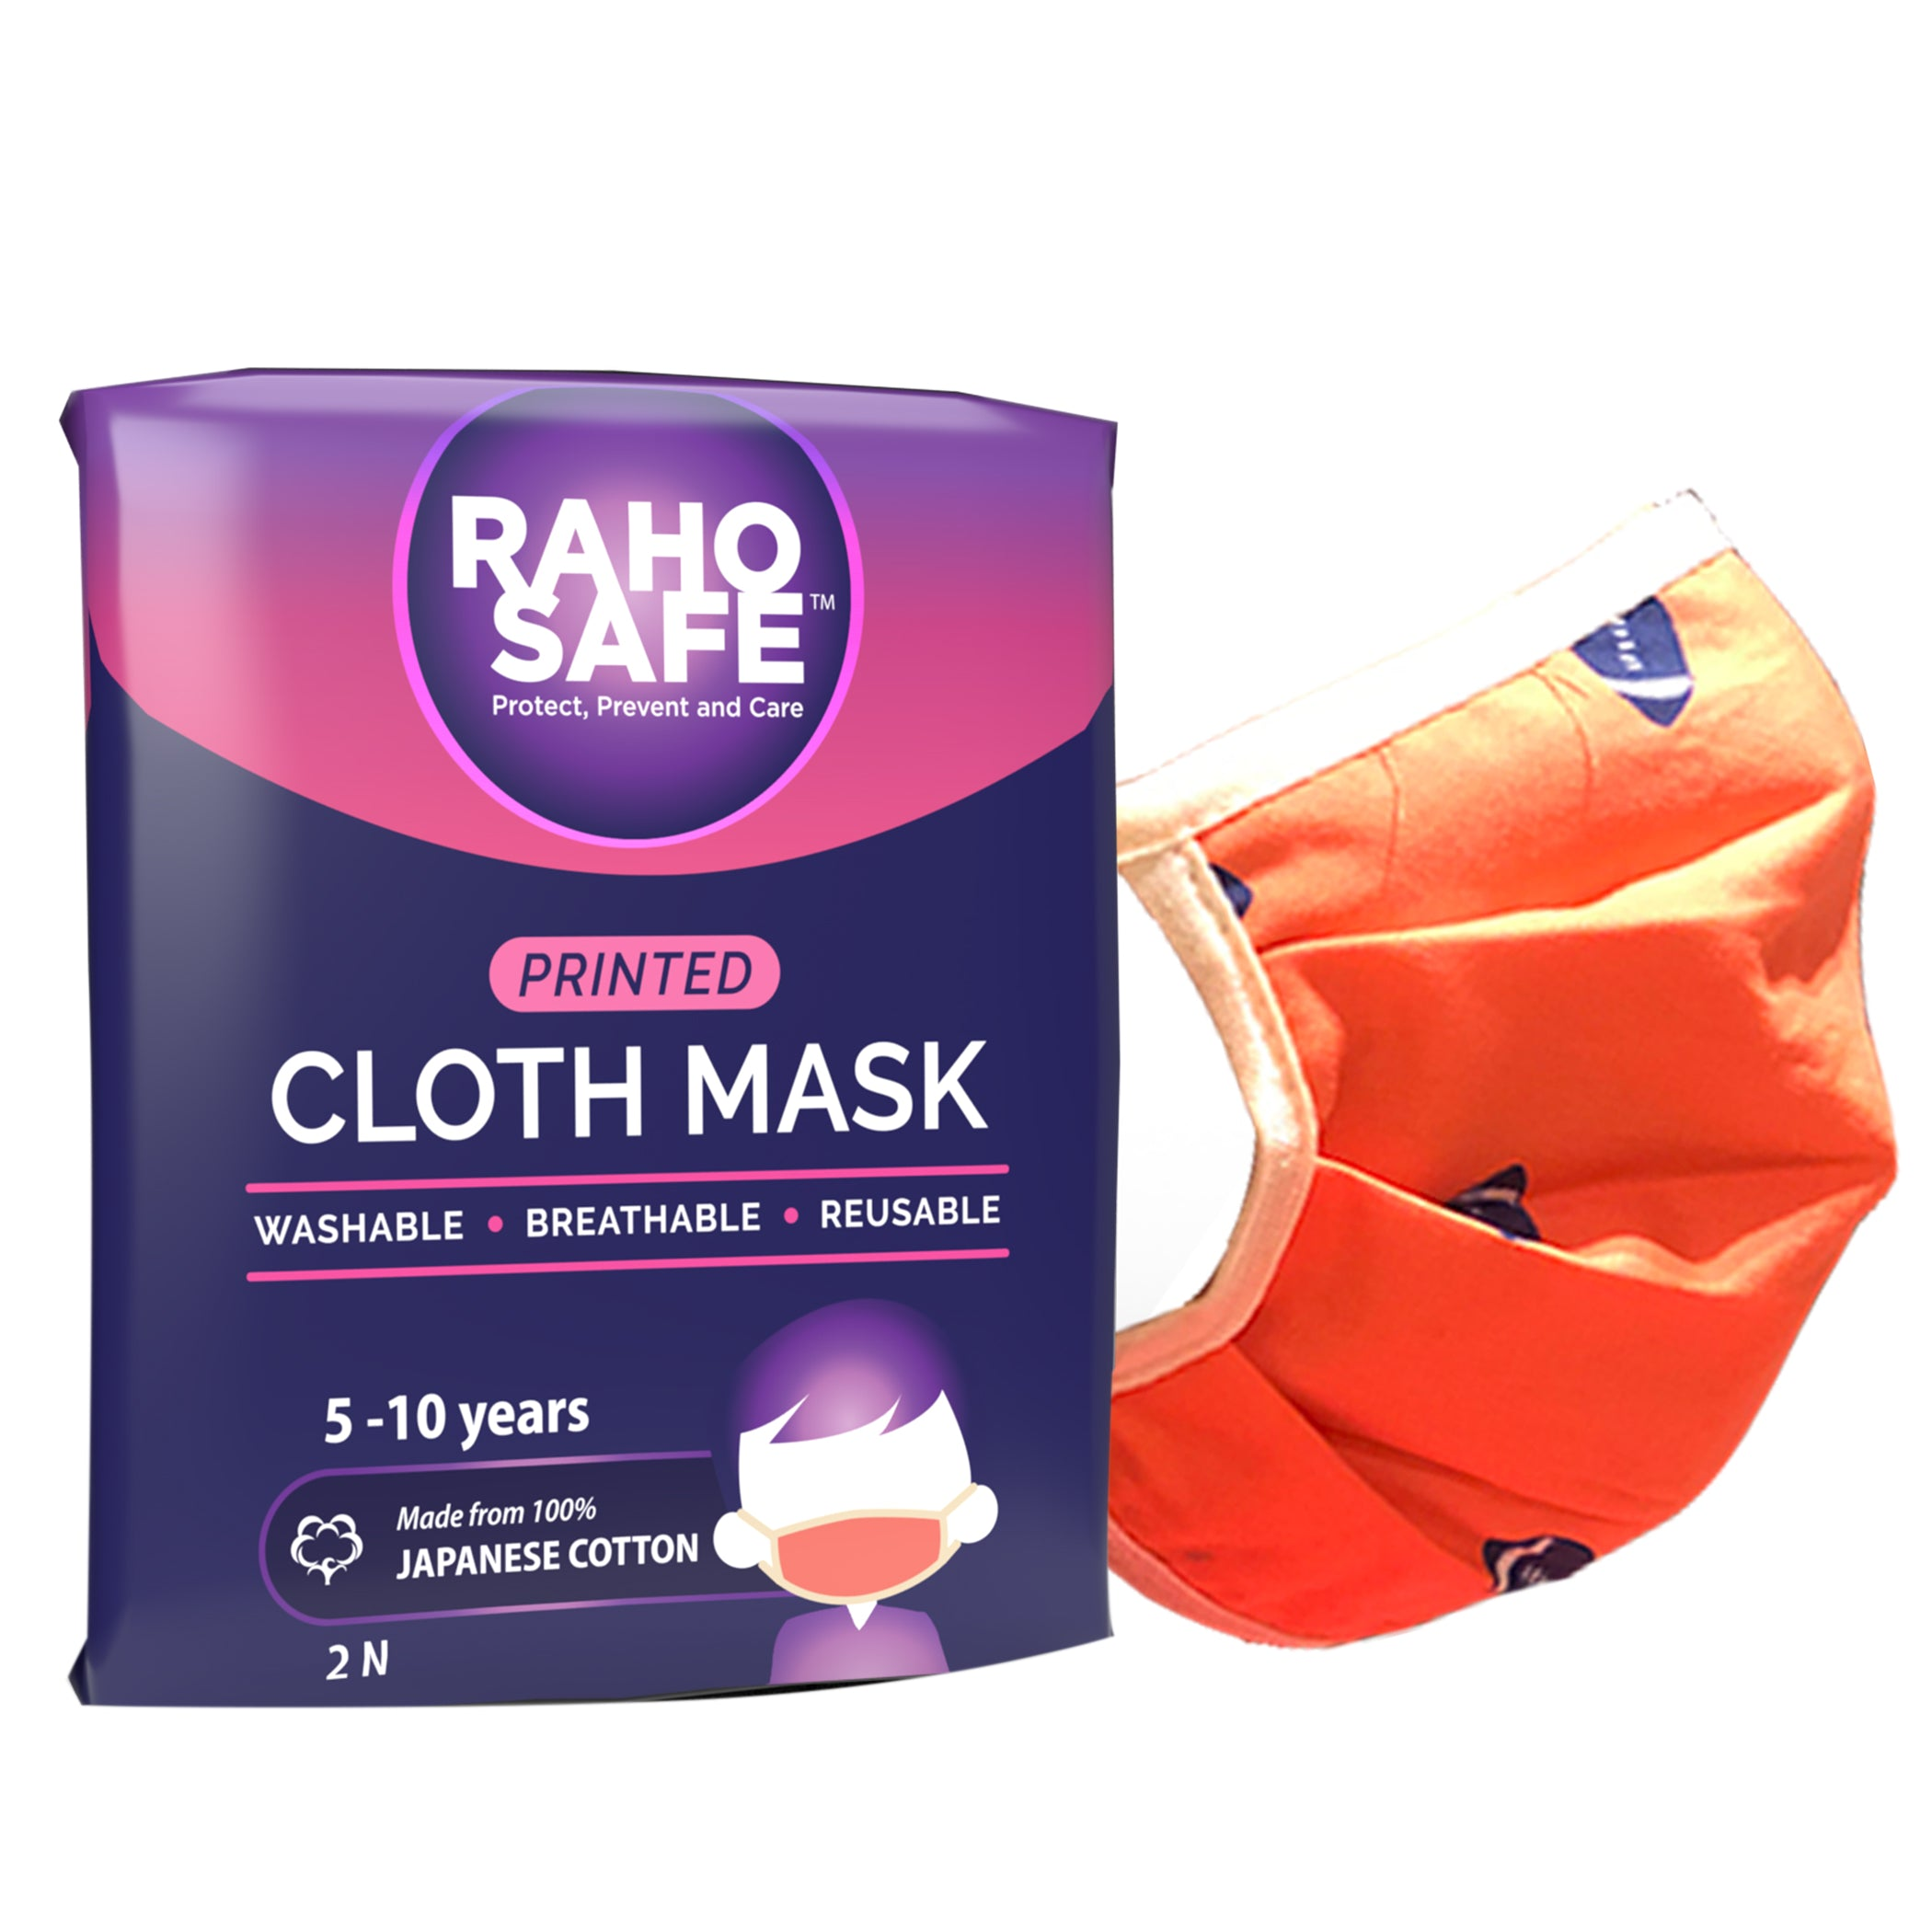 Printed Cloth Mask (Pack of 2) - Small